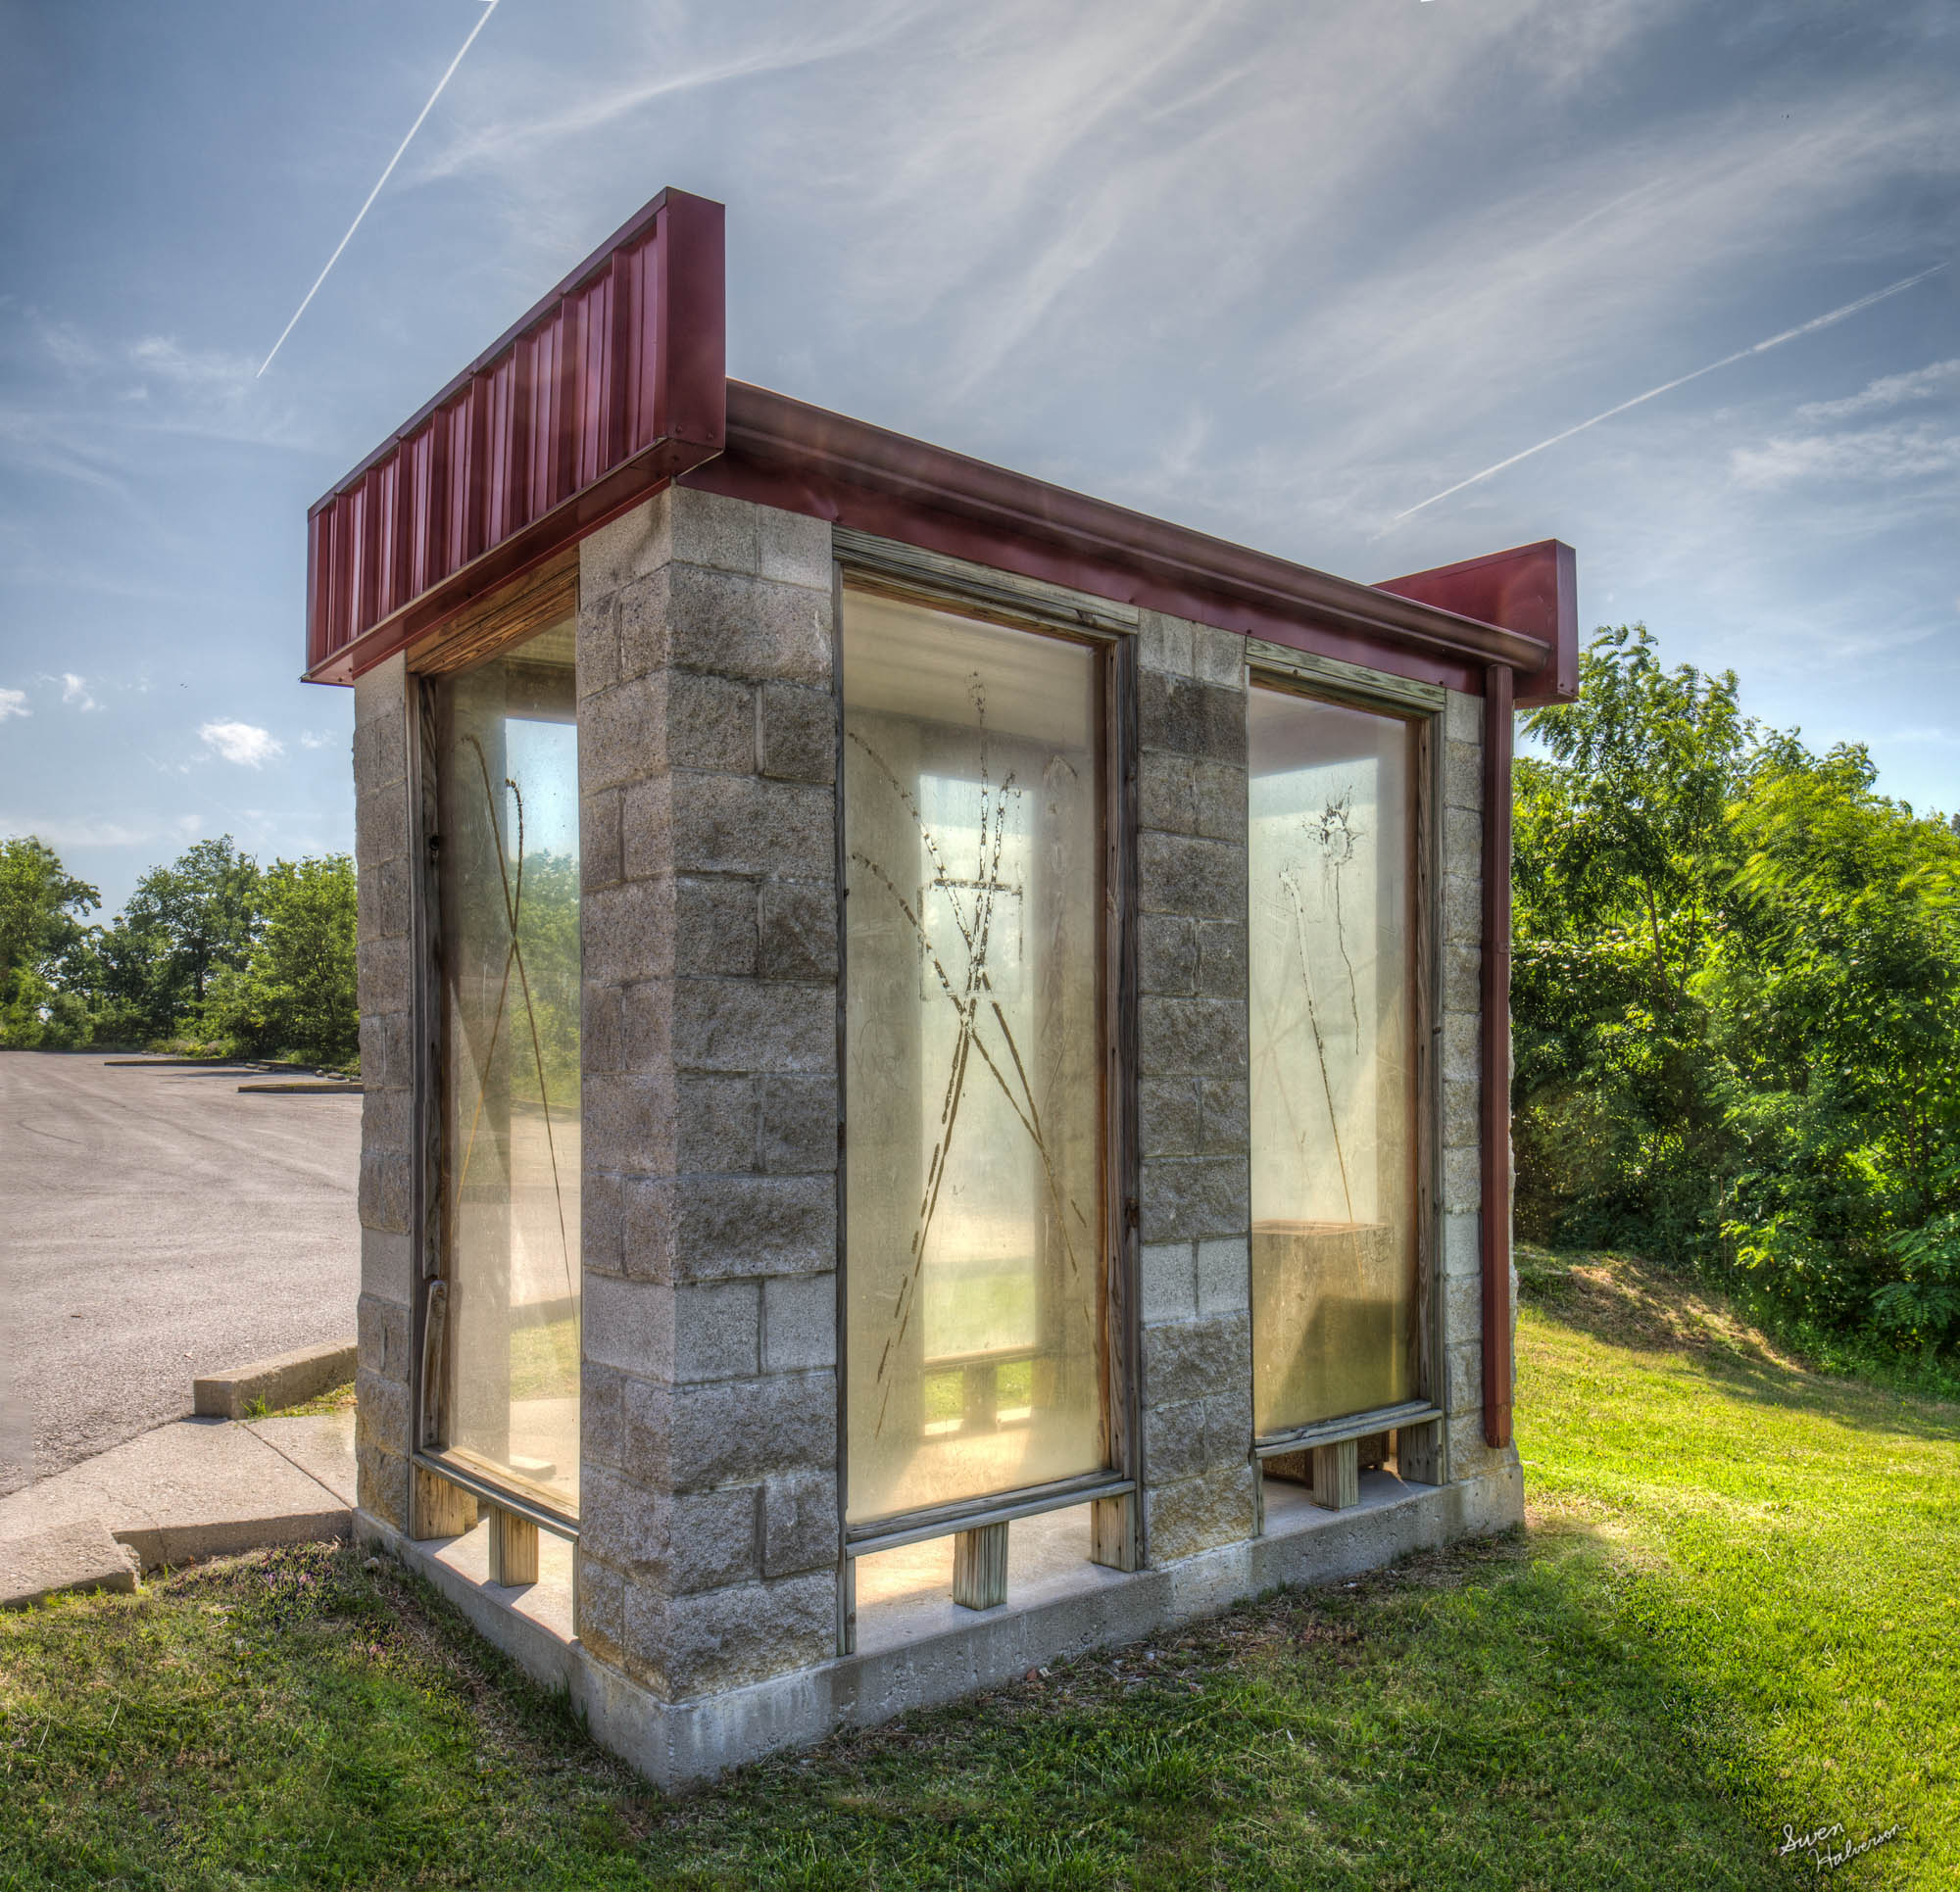 Theme: Sparse   Title: The Phone Booth